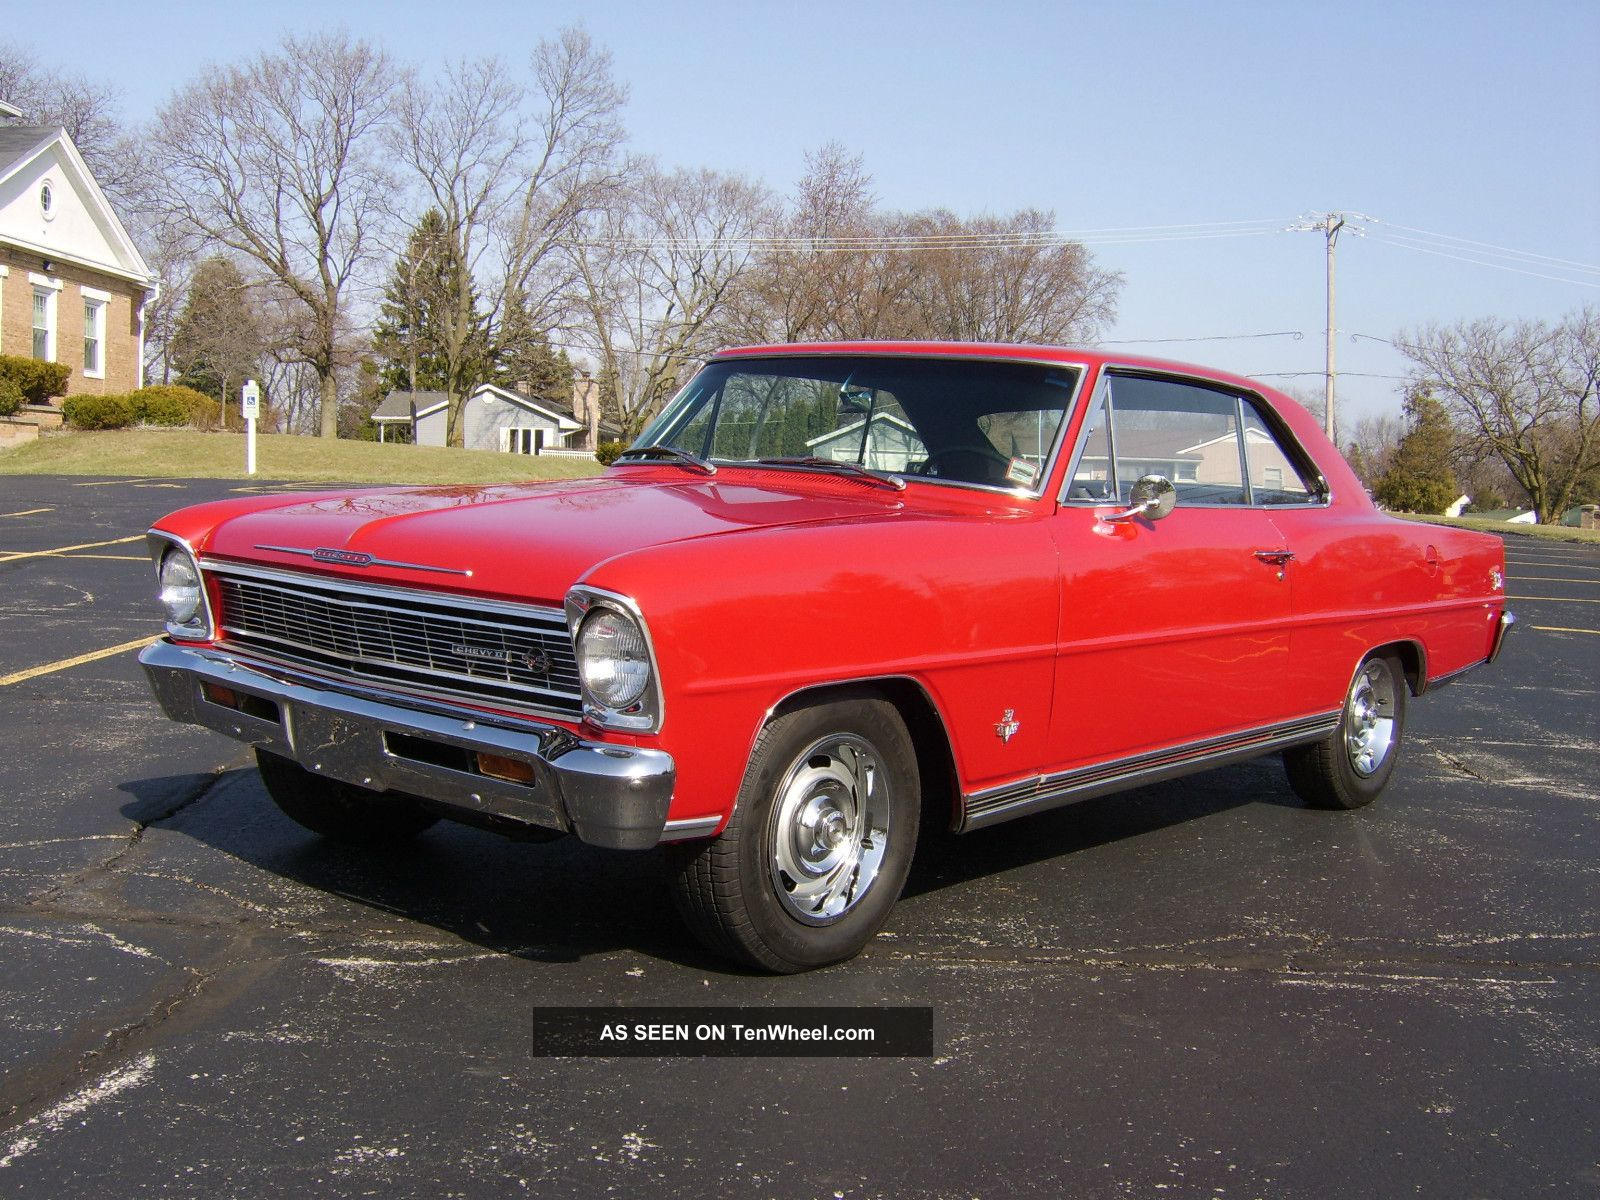 1966 Chevy Ii Nova Ss S Match 327 Red Bucket Seat Car